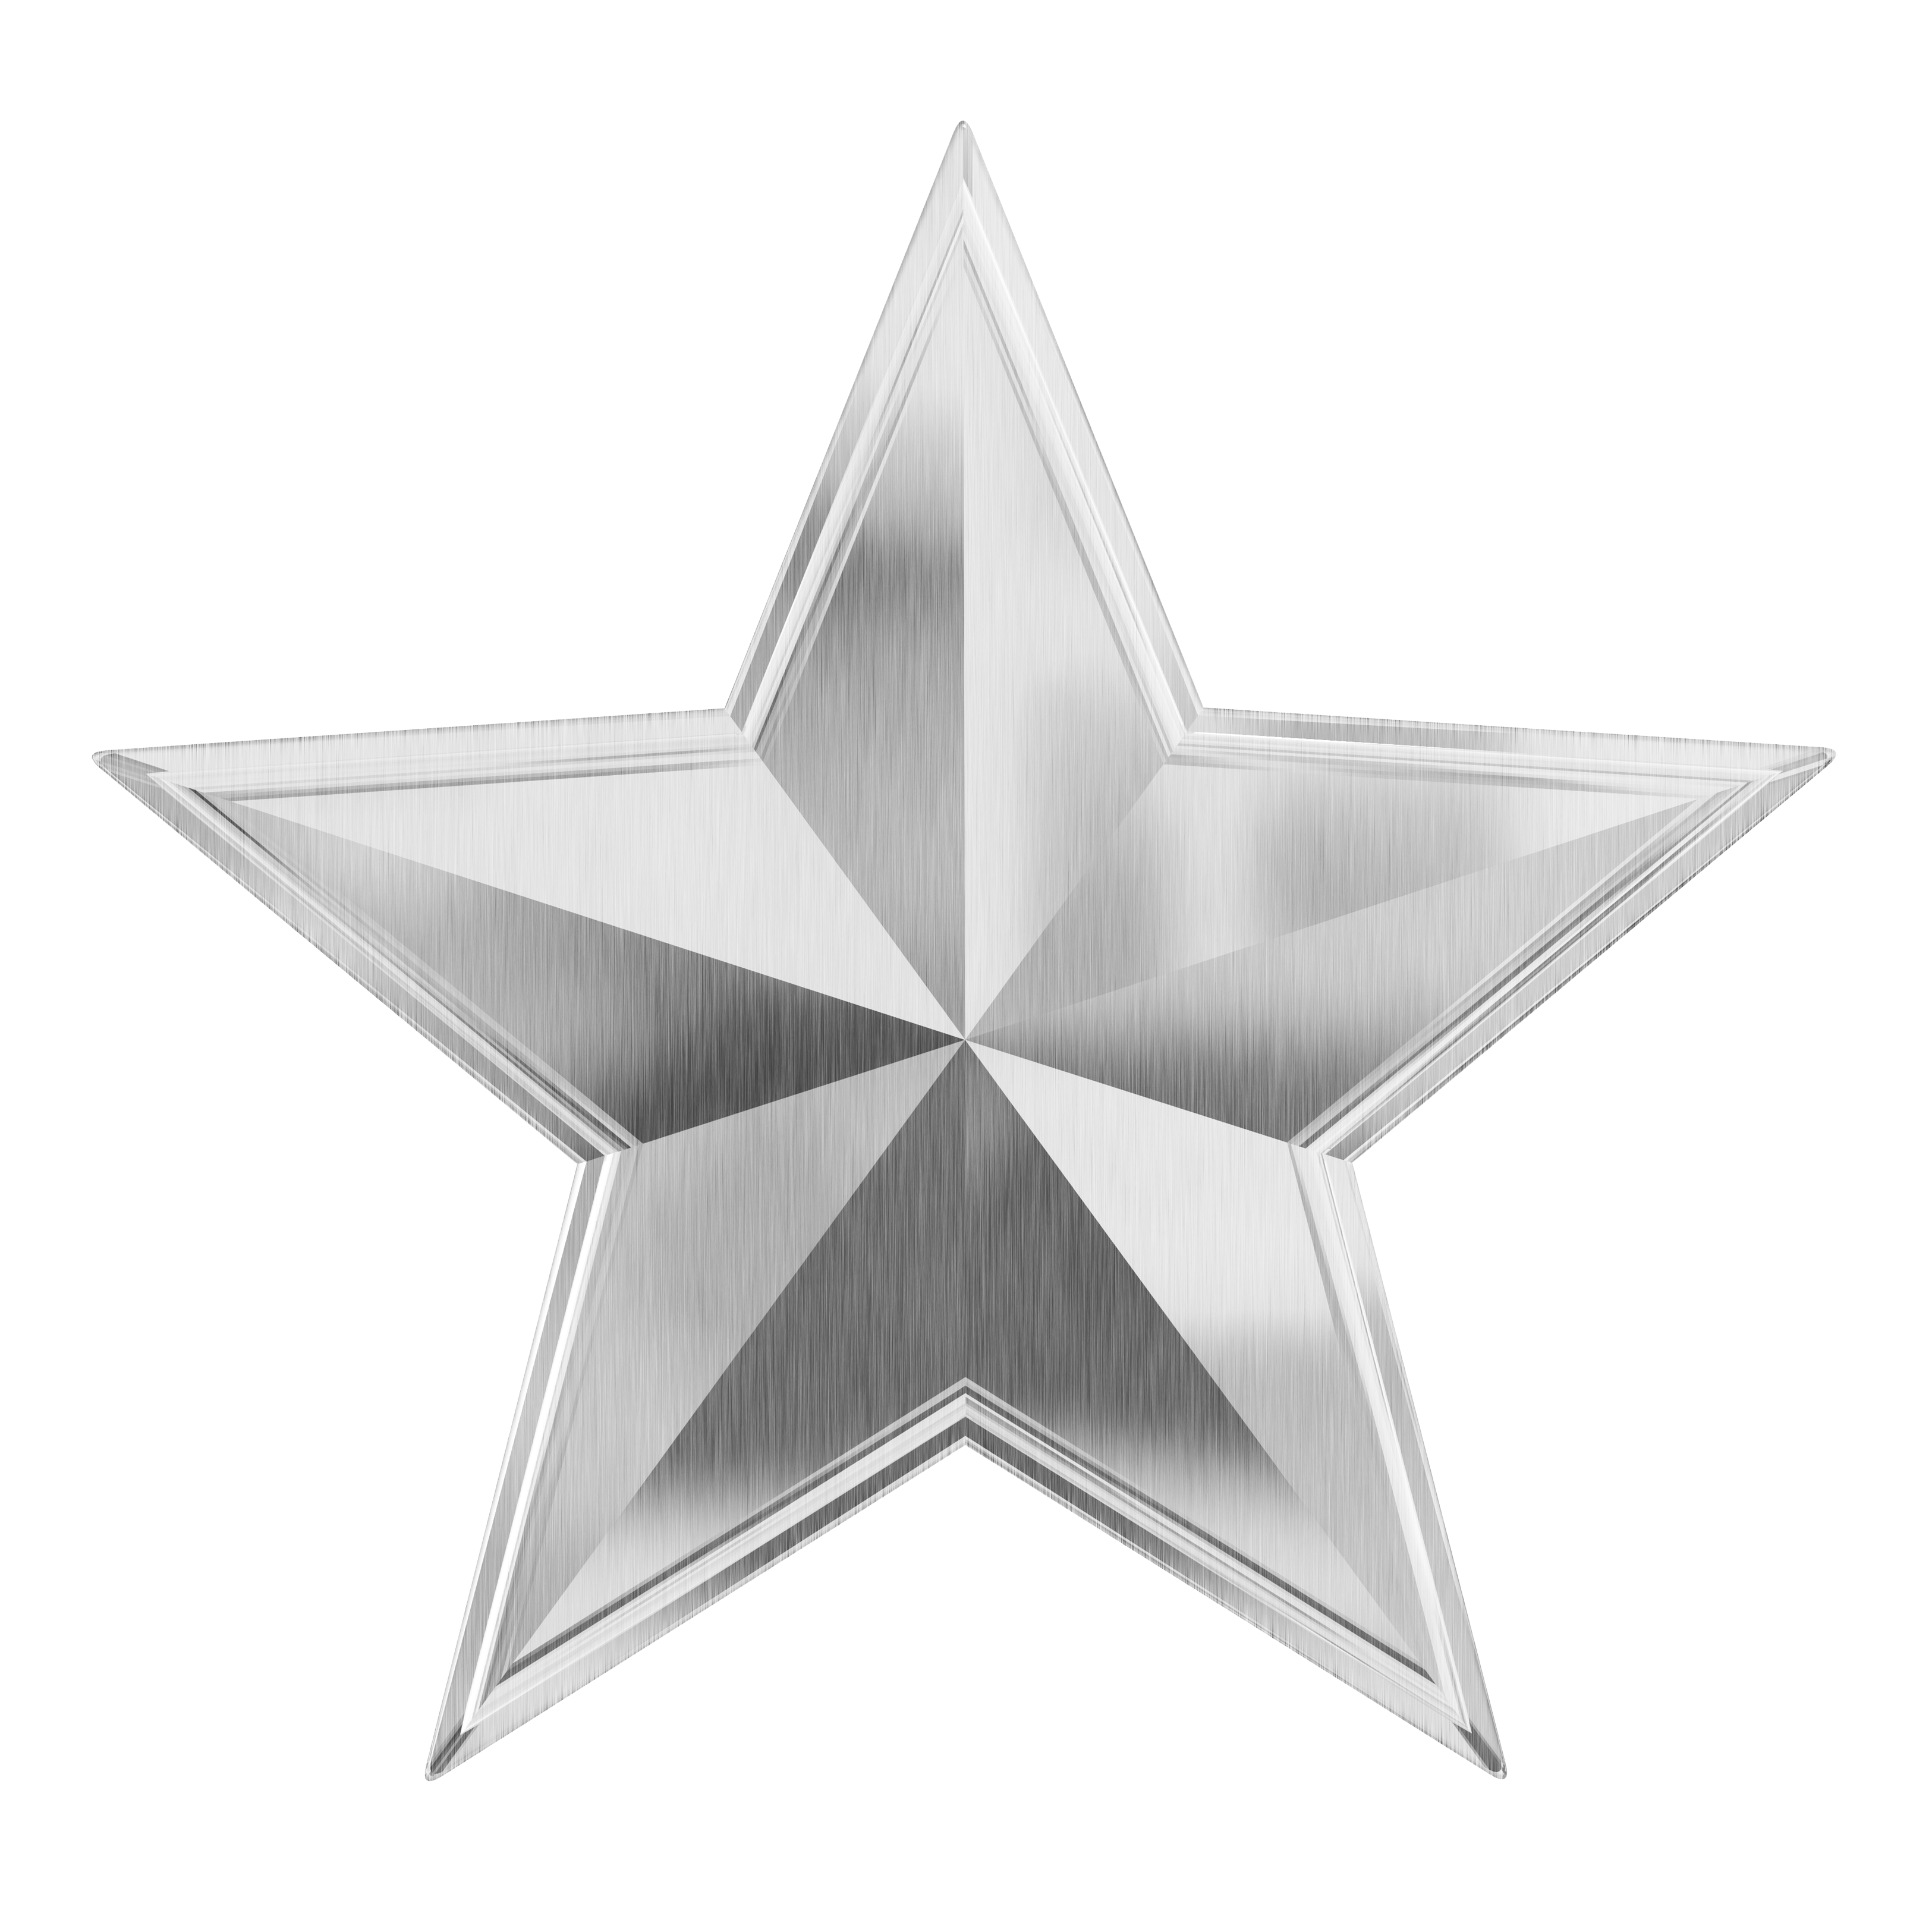 Star png white. Images pngpix silver transparent